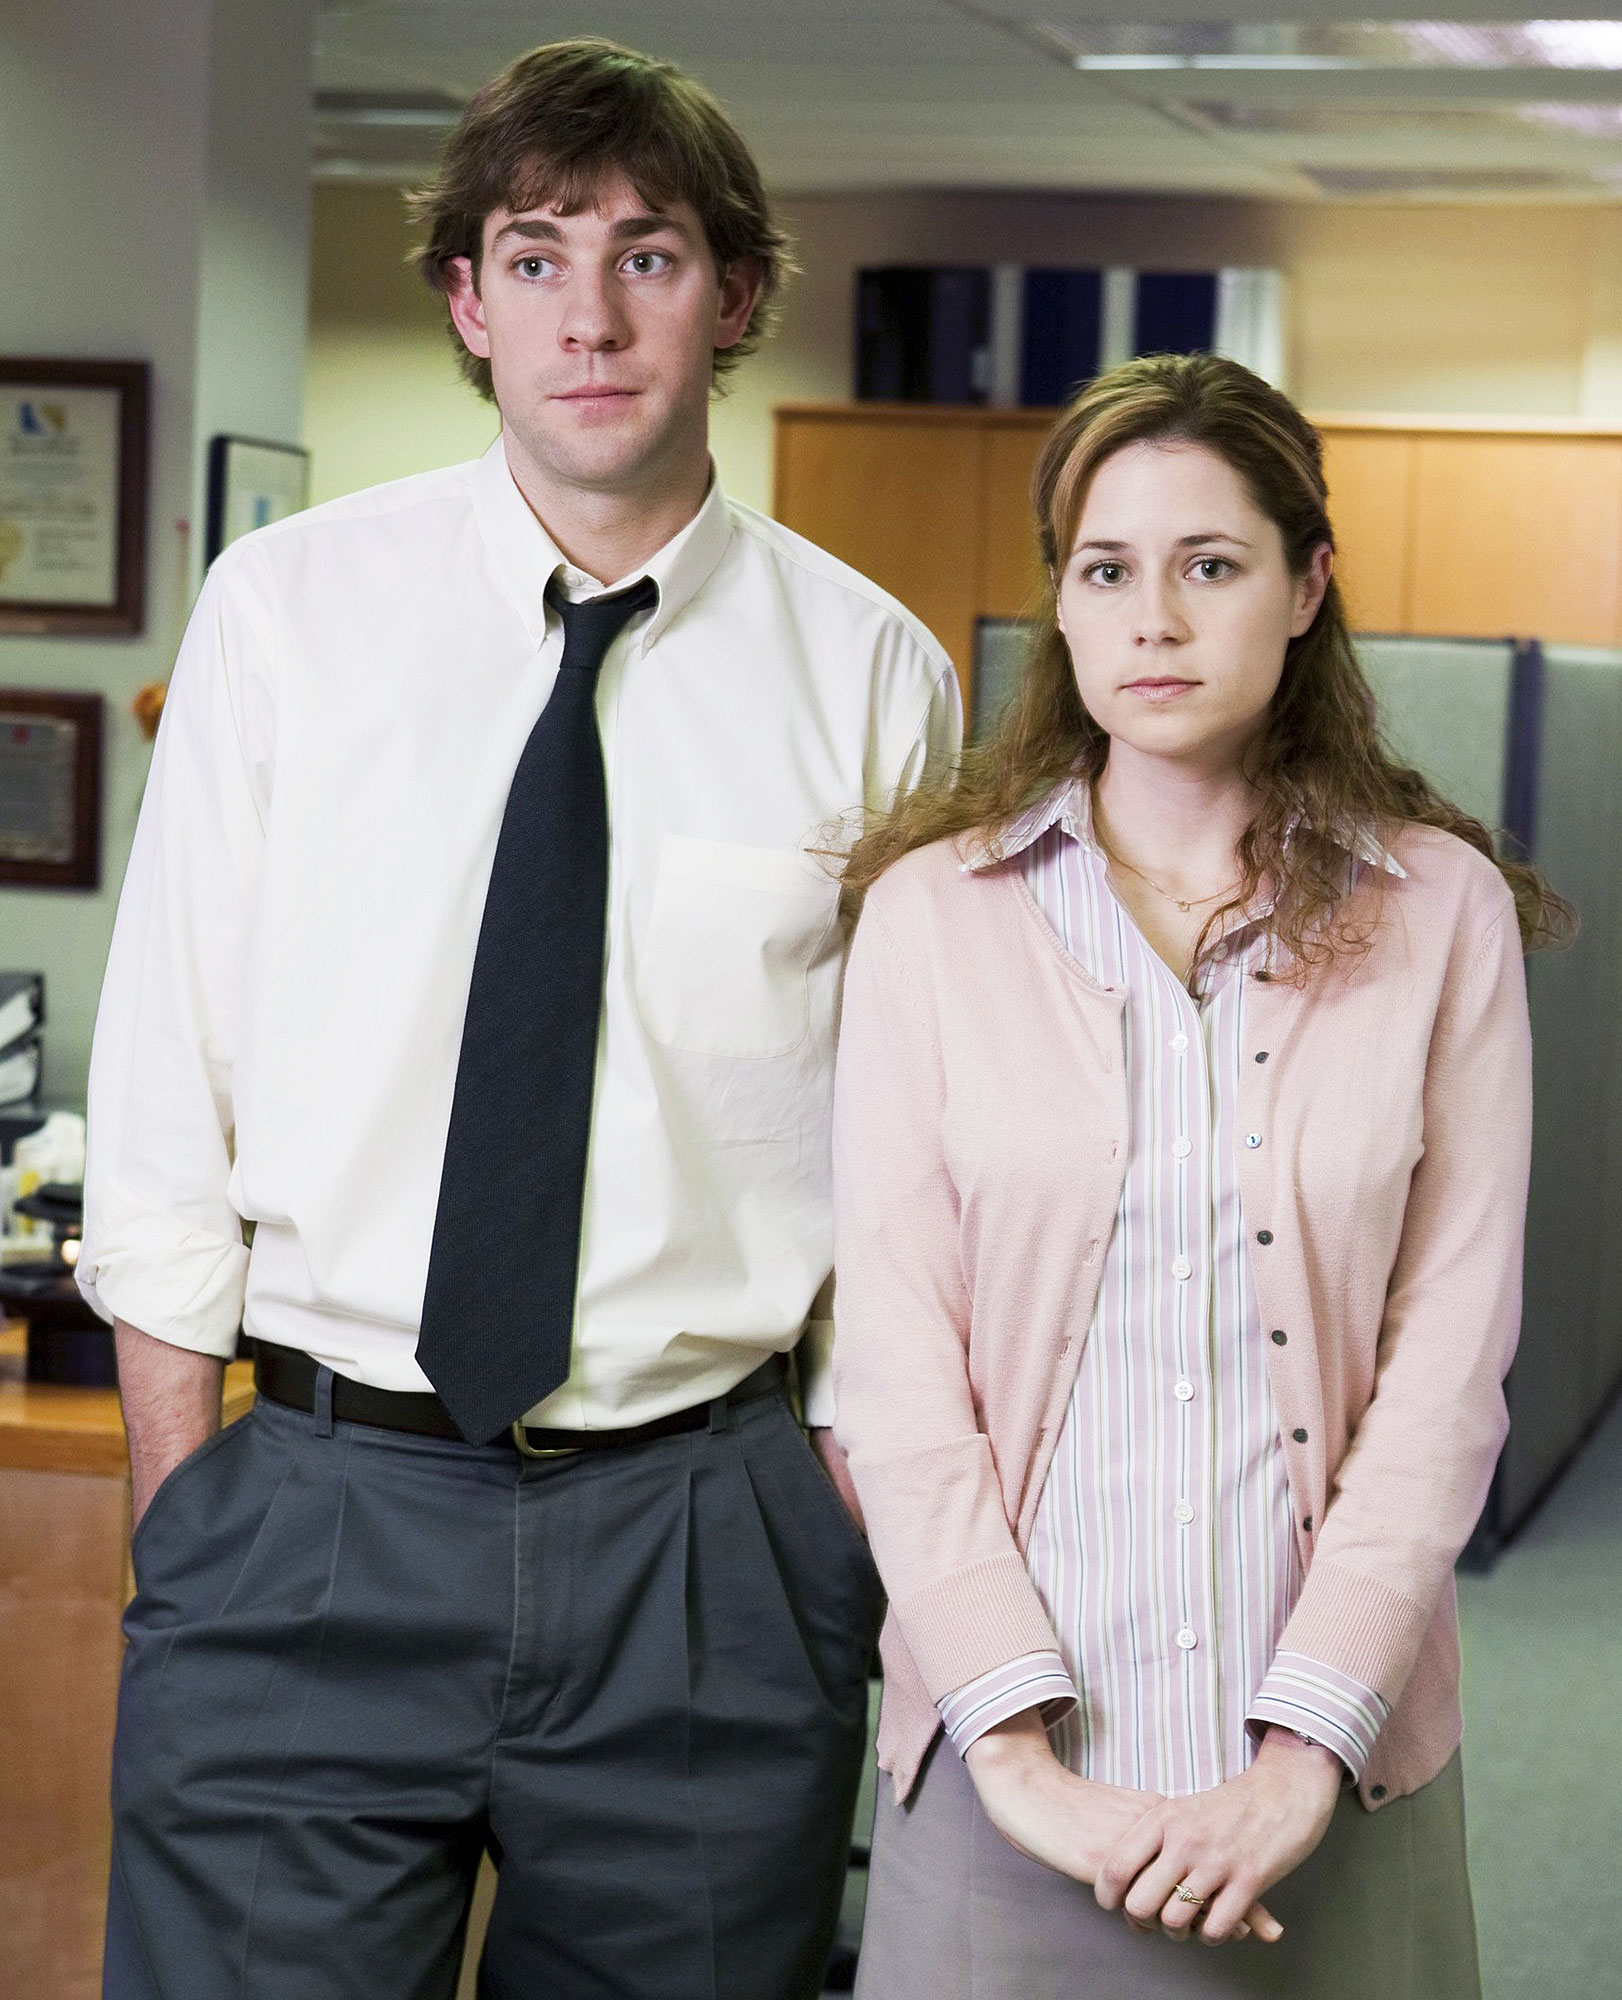 Best TV Couples The Office John Krasinski Jenna Fischer - Show: The Office Actors: John Krasinski and Jenna Fischer Network: NBC Seasons: 9